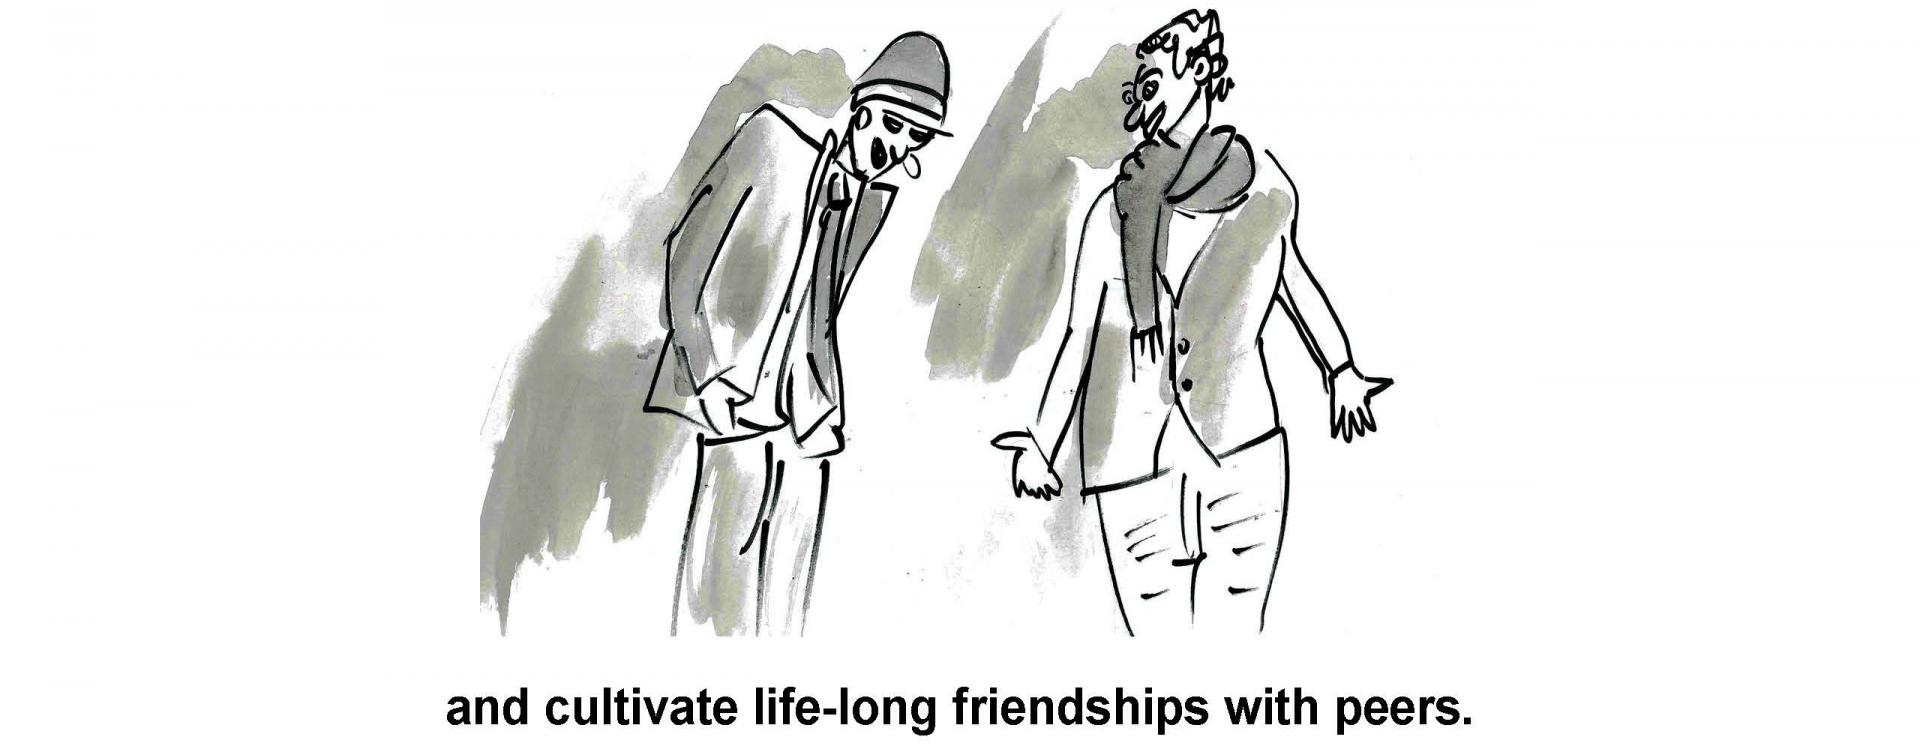 and cultivate life-long friendships with peers.